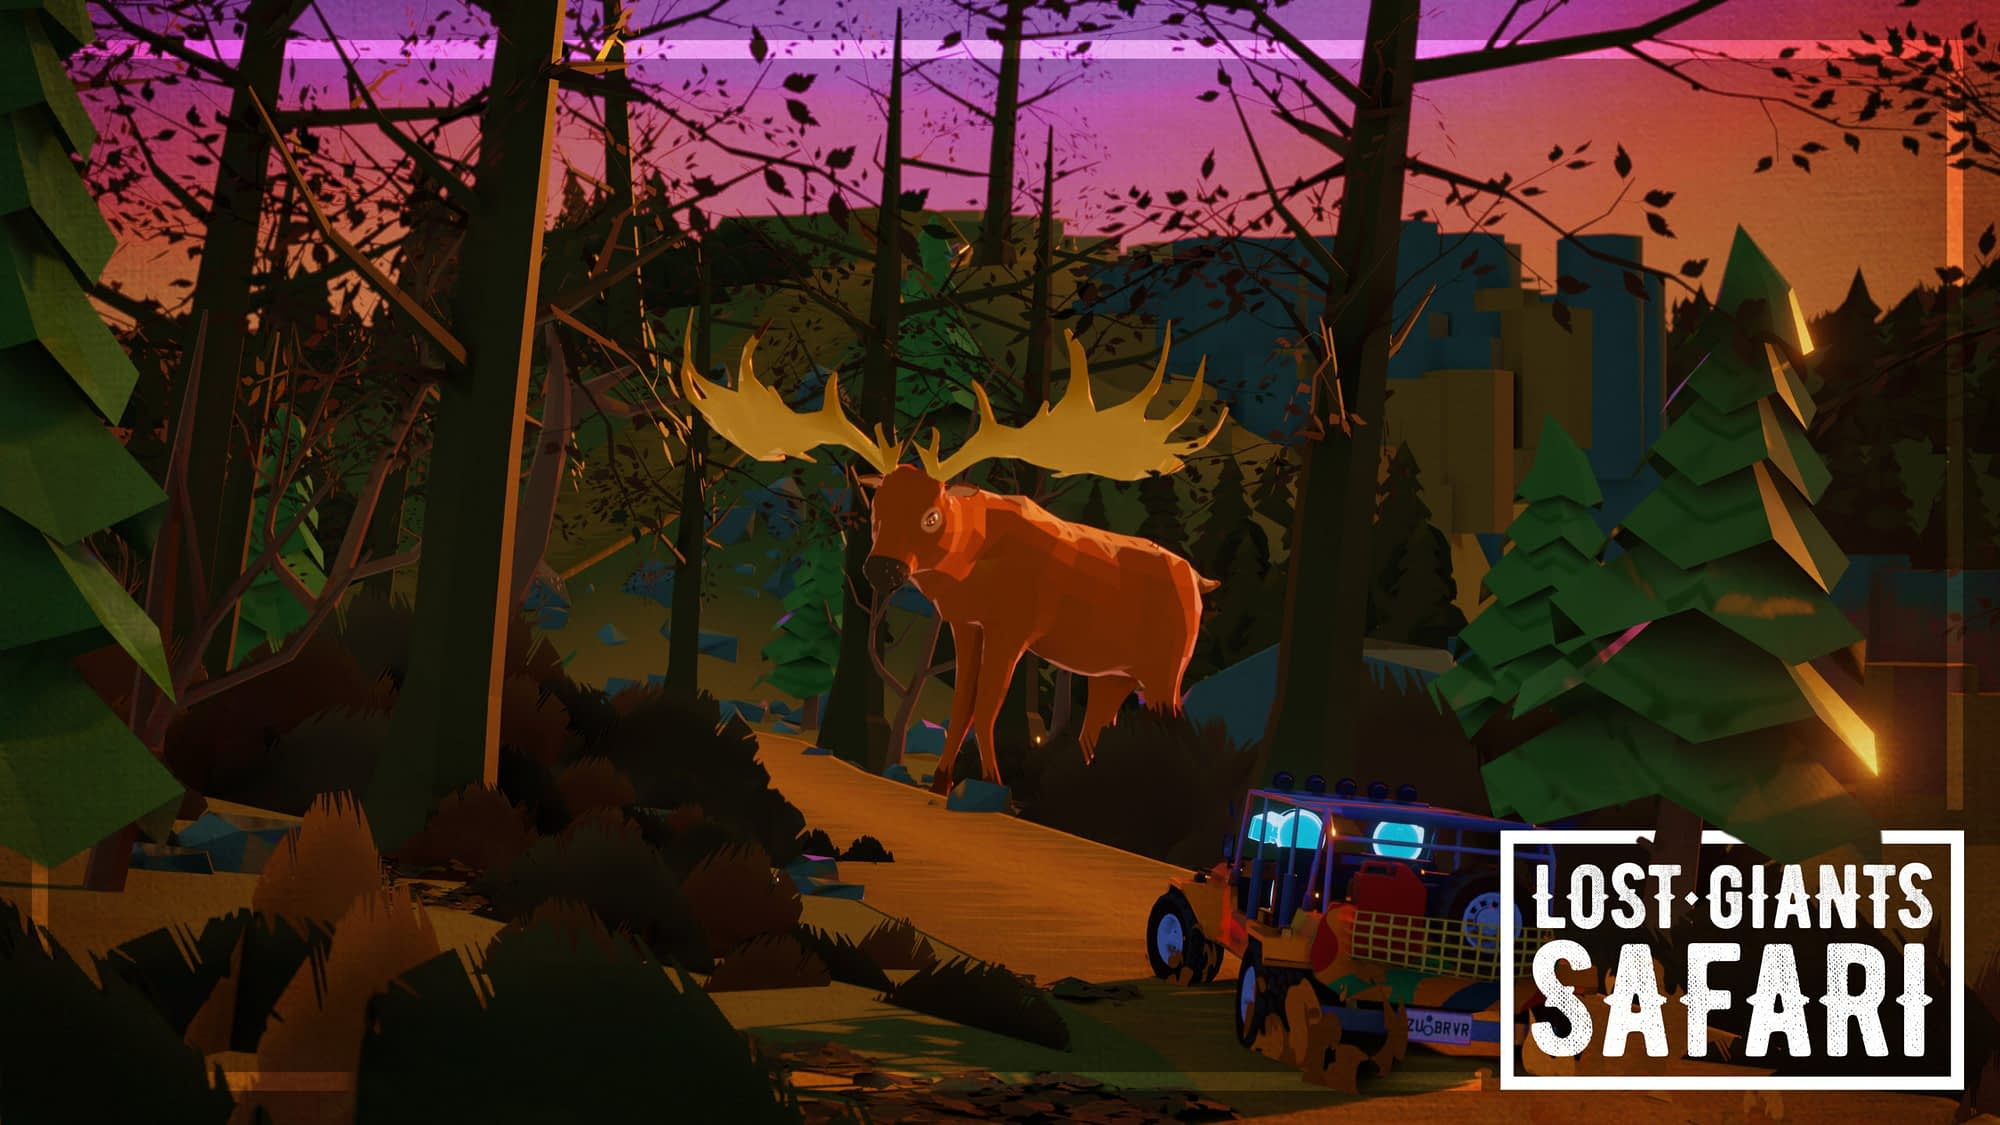 Zubr virtual reality Jeep adventure with giant cartoon animals